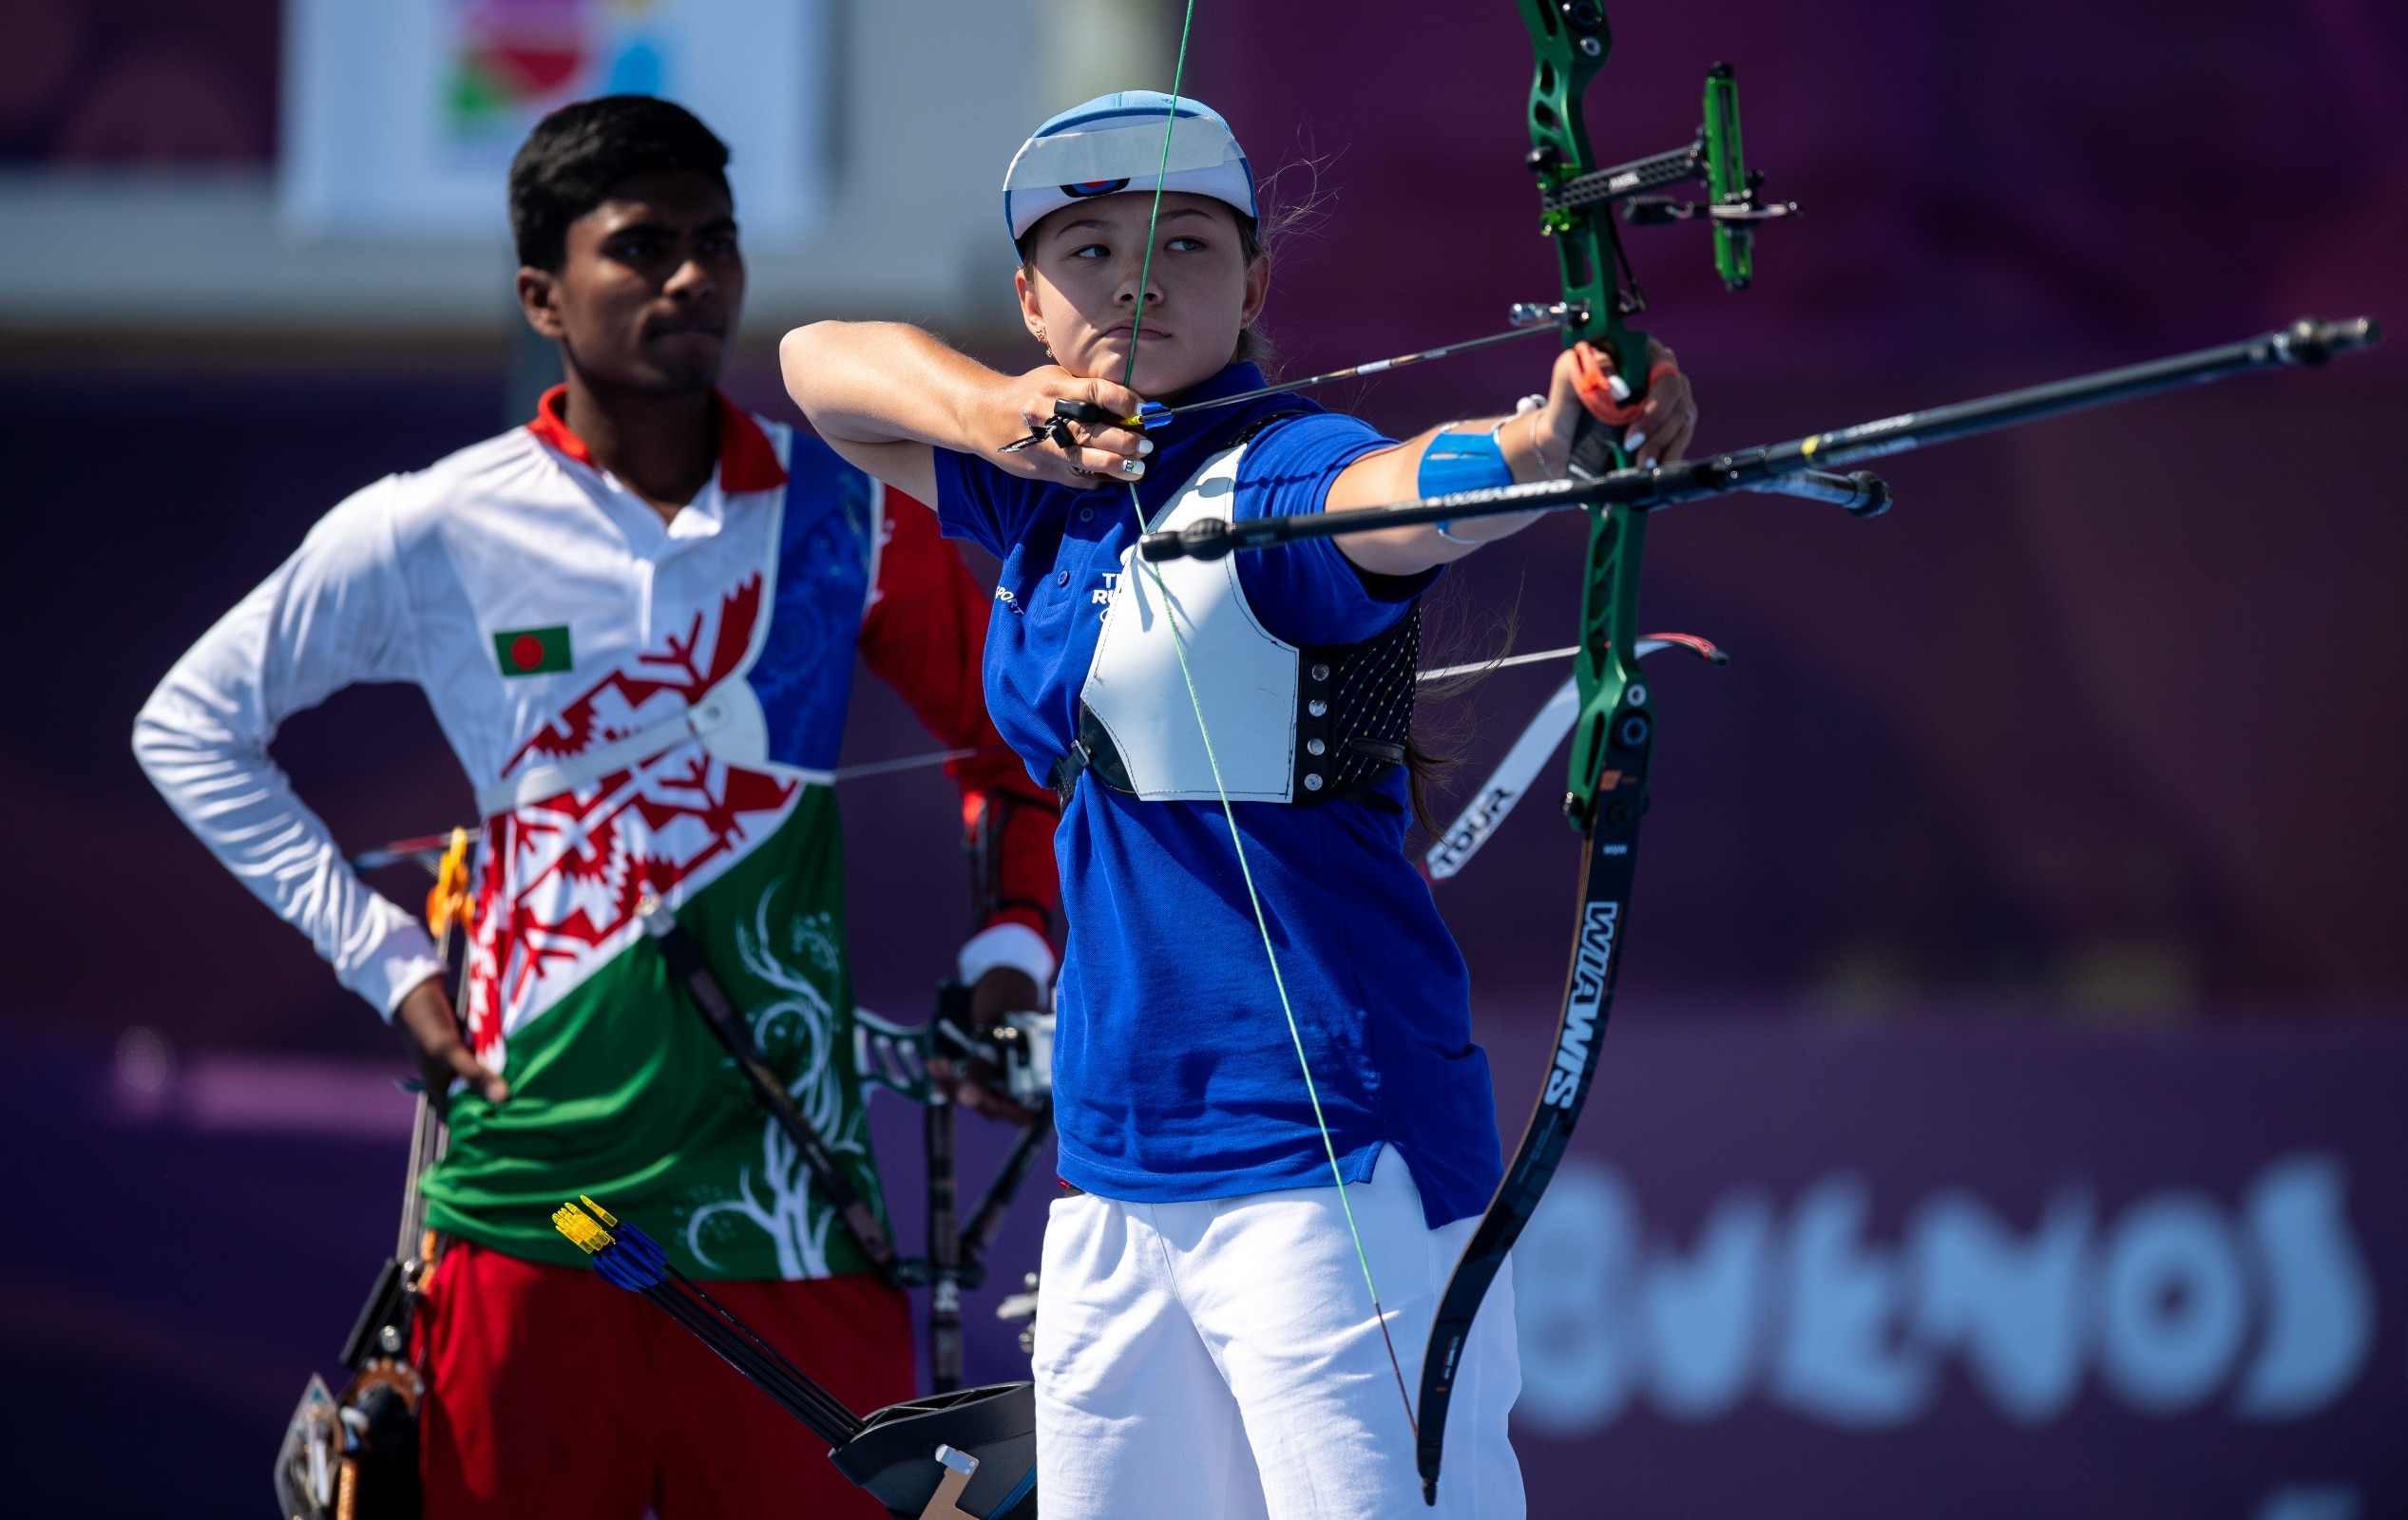 Buenos Aires 2018 - Archery - Mixed International Team Event